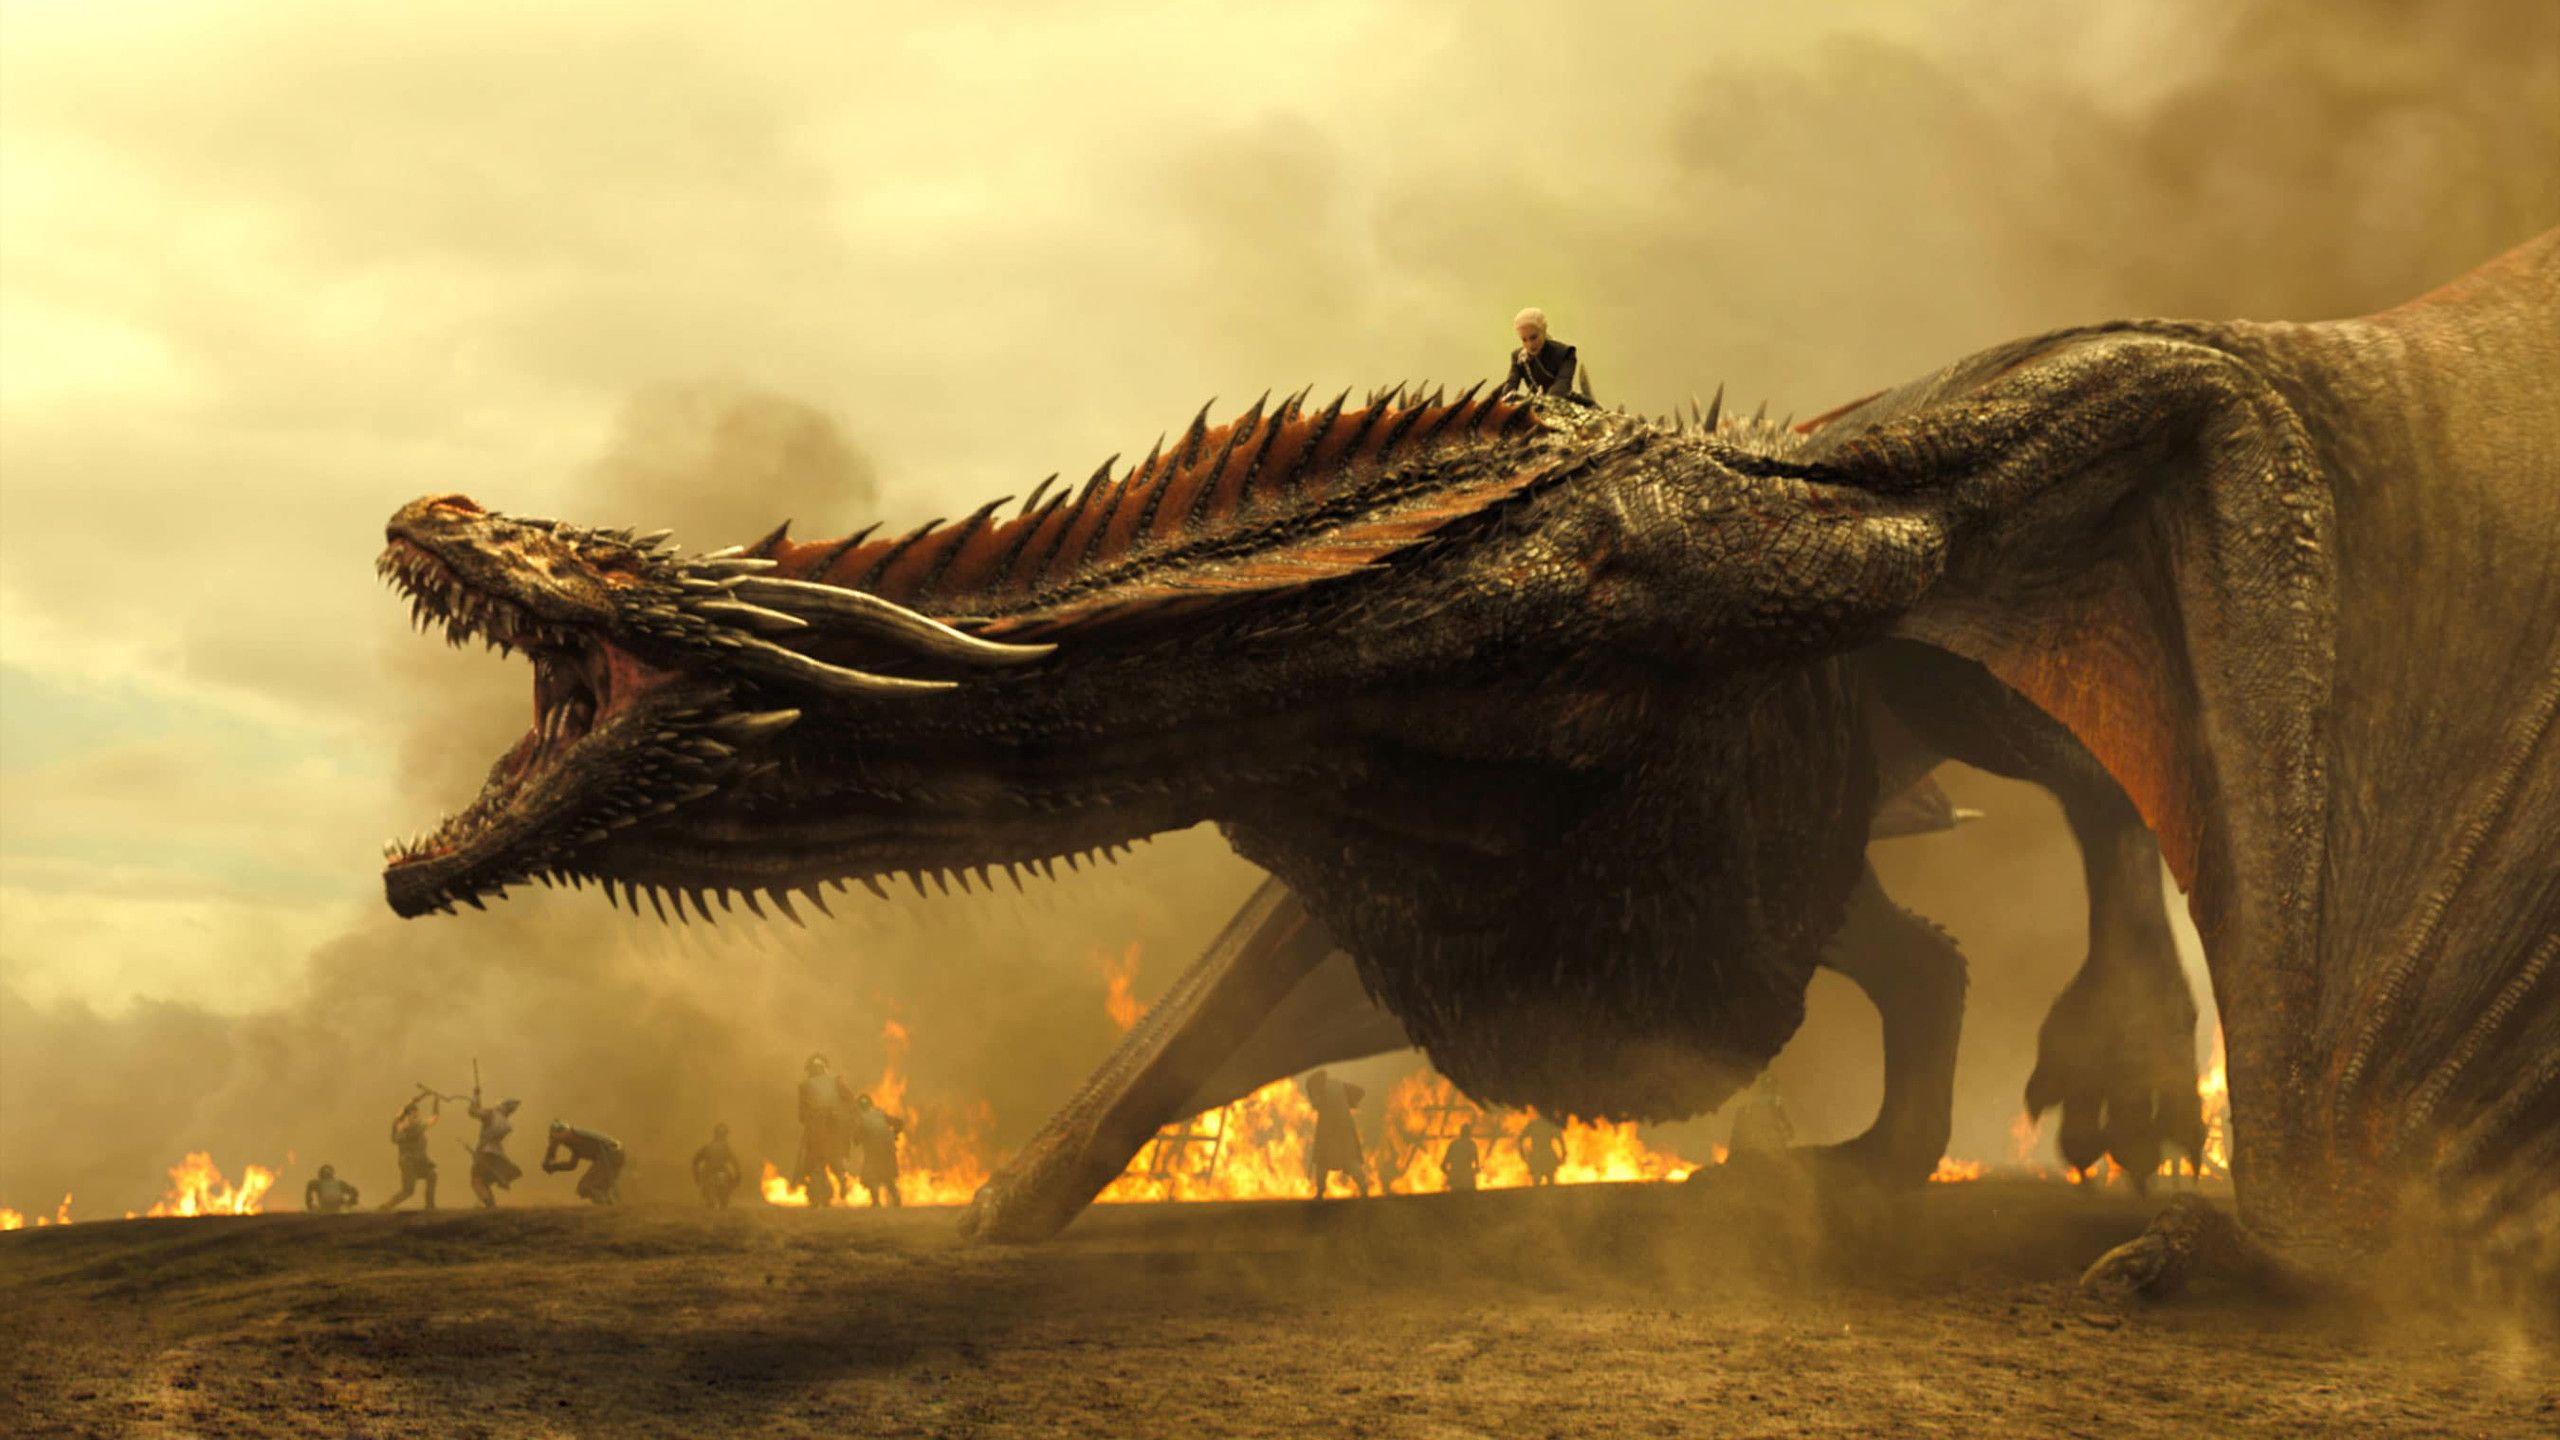 Game of Thrones Wallpapers - Top Free Game of Thrones